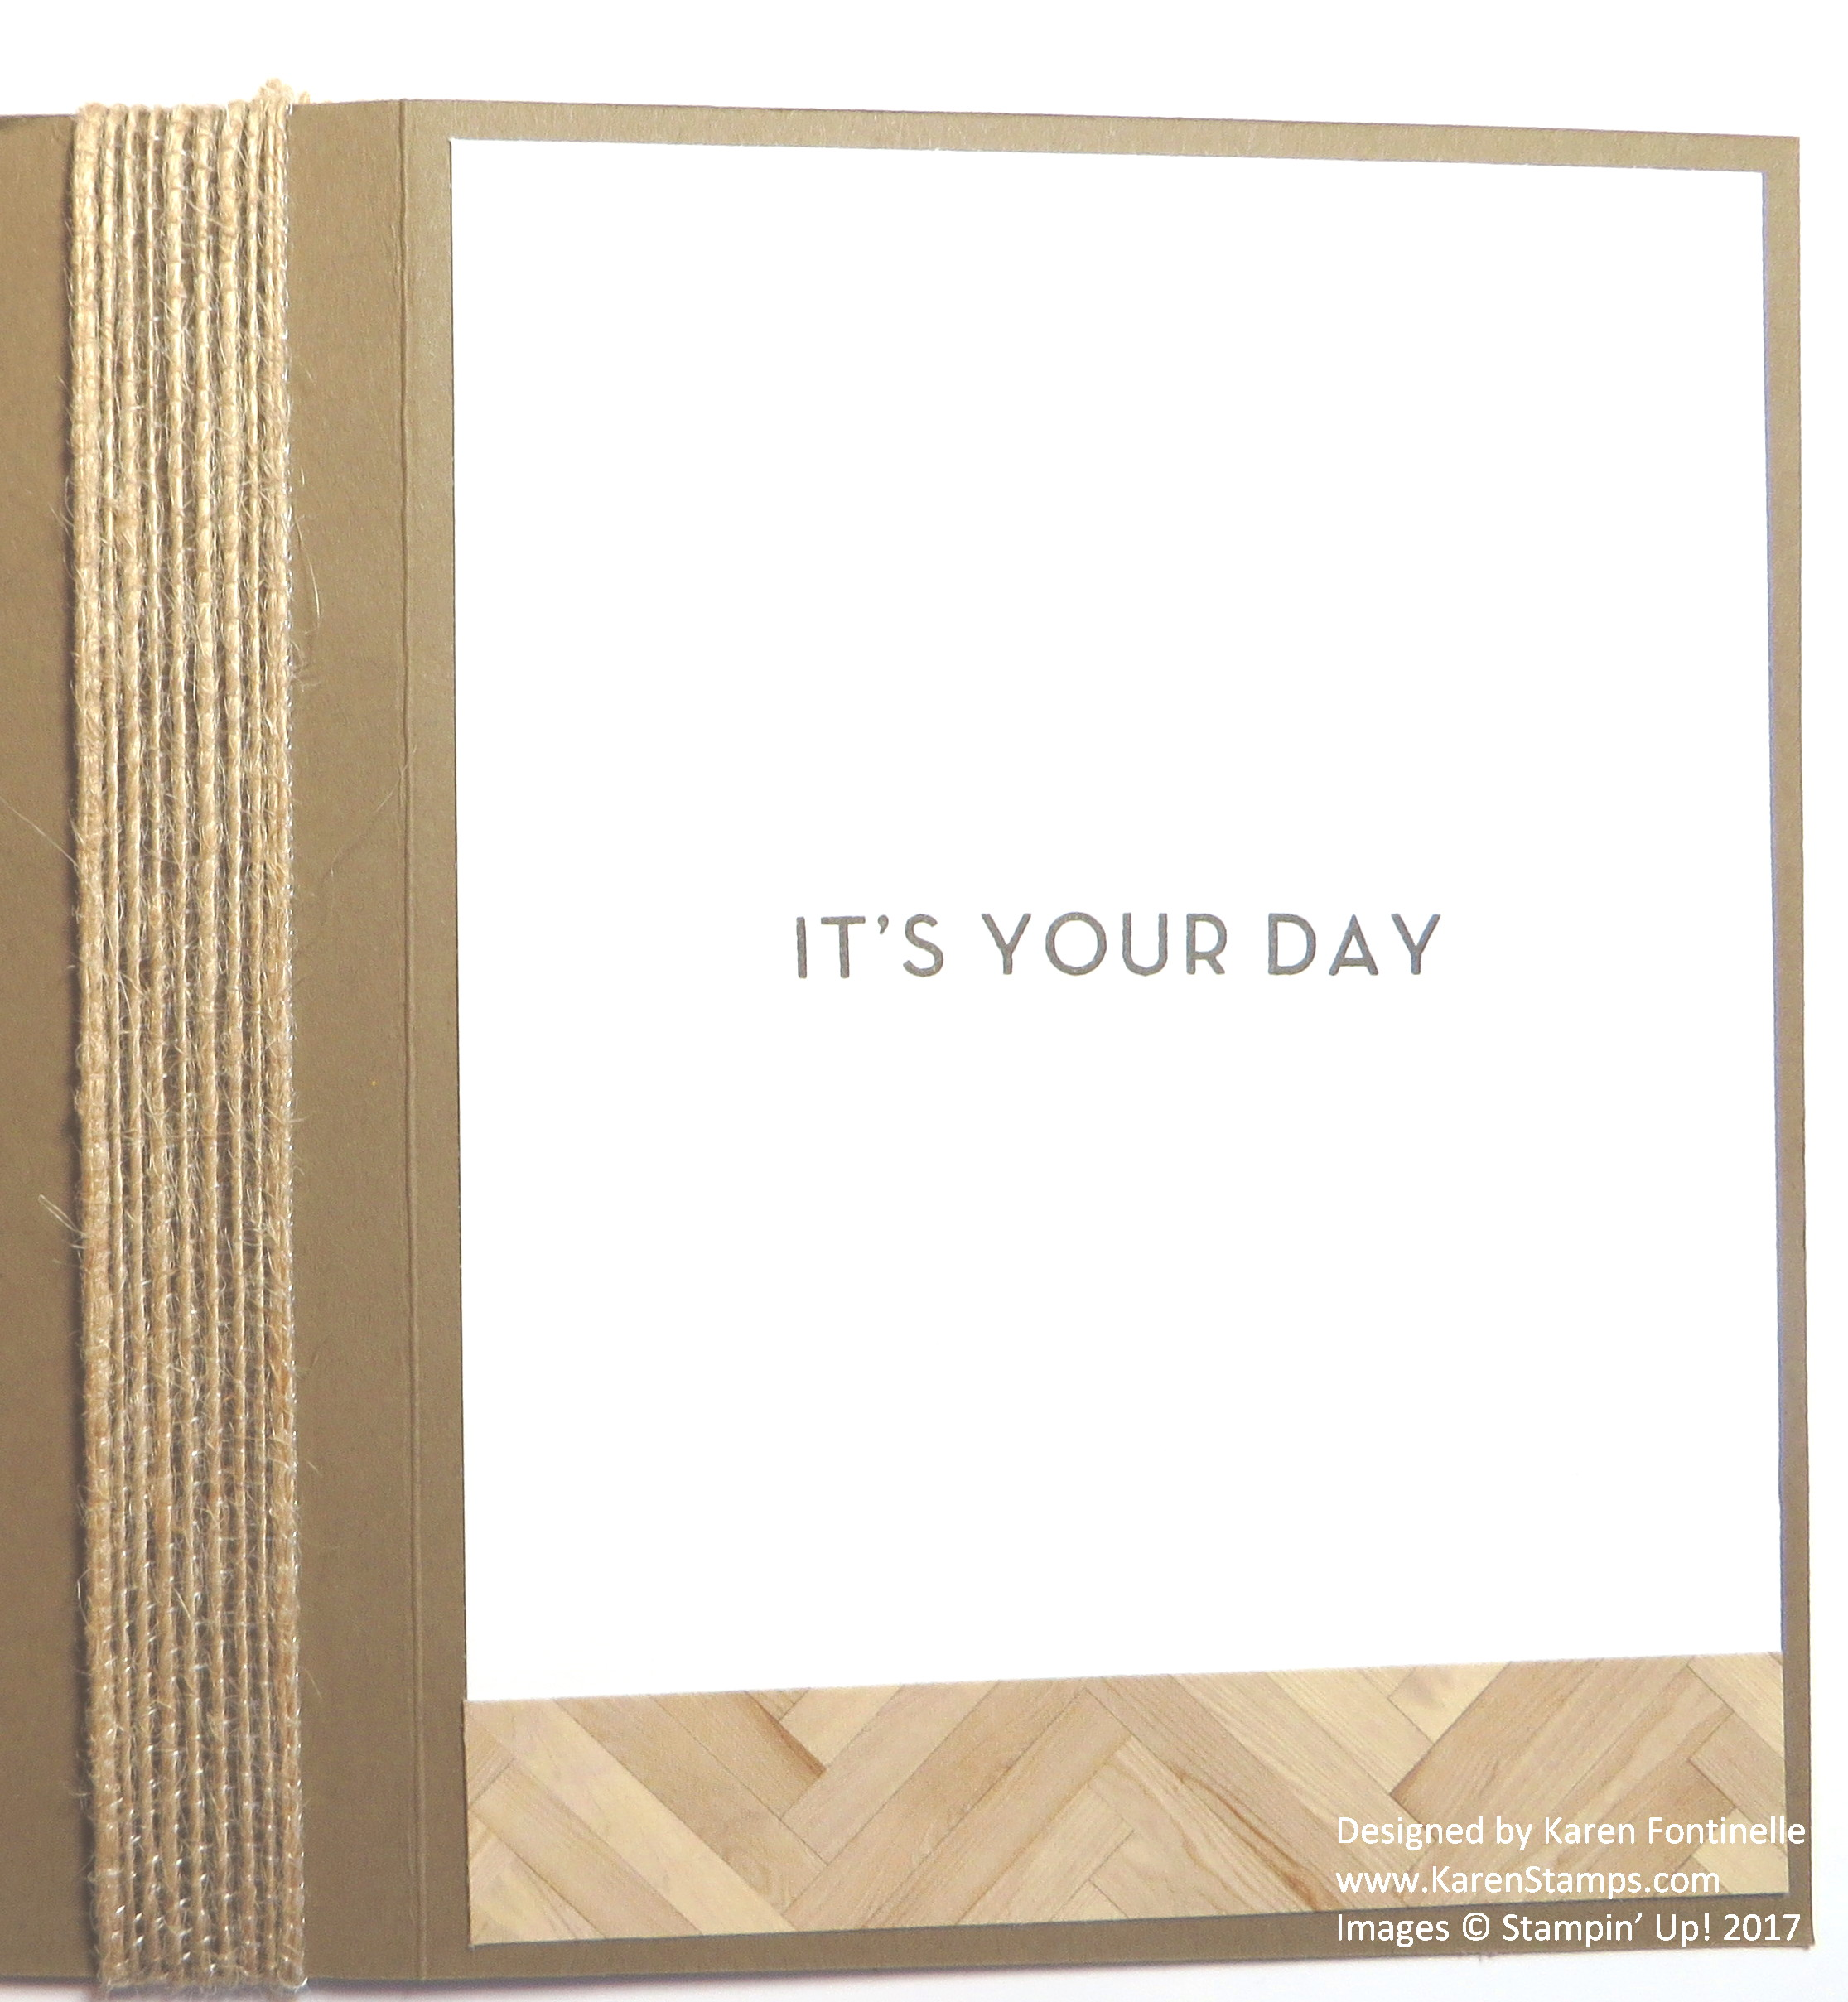 Easy Masculine Birthday Card with Serene Scenery Inside